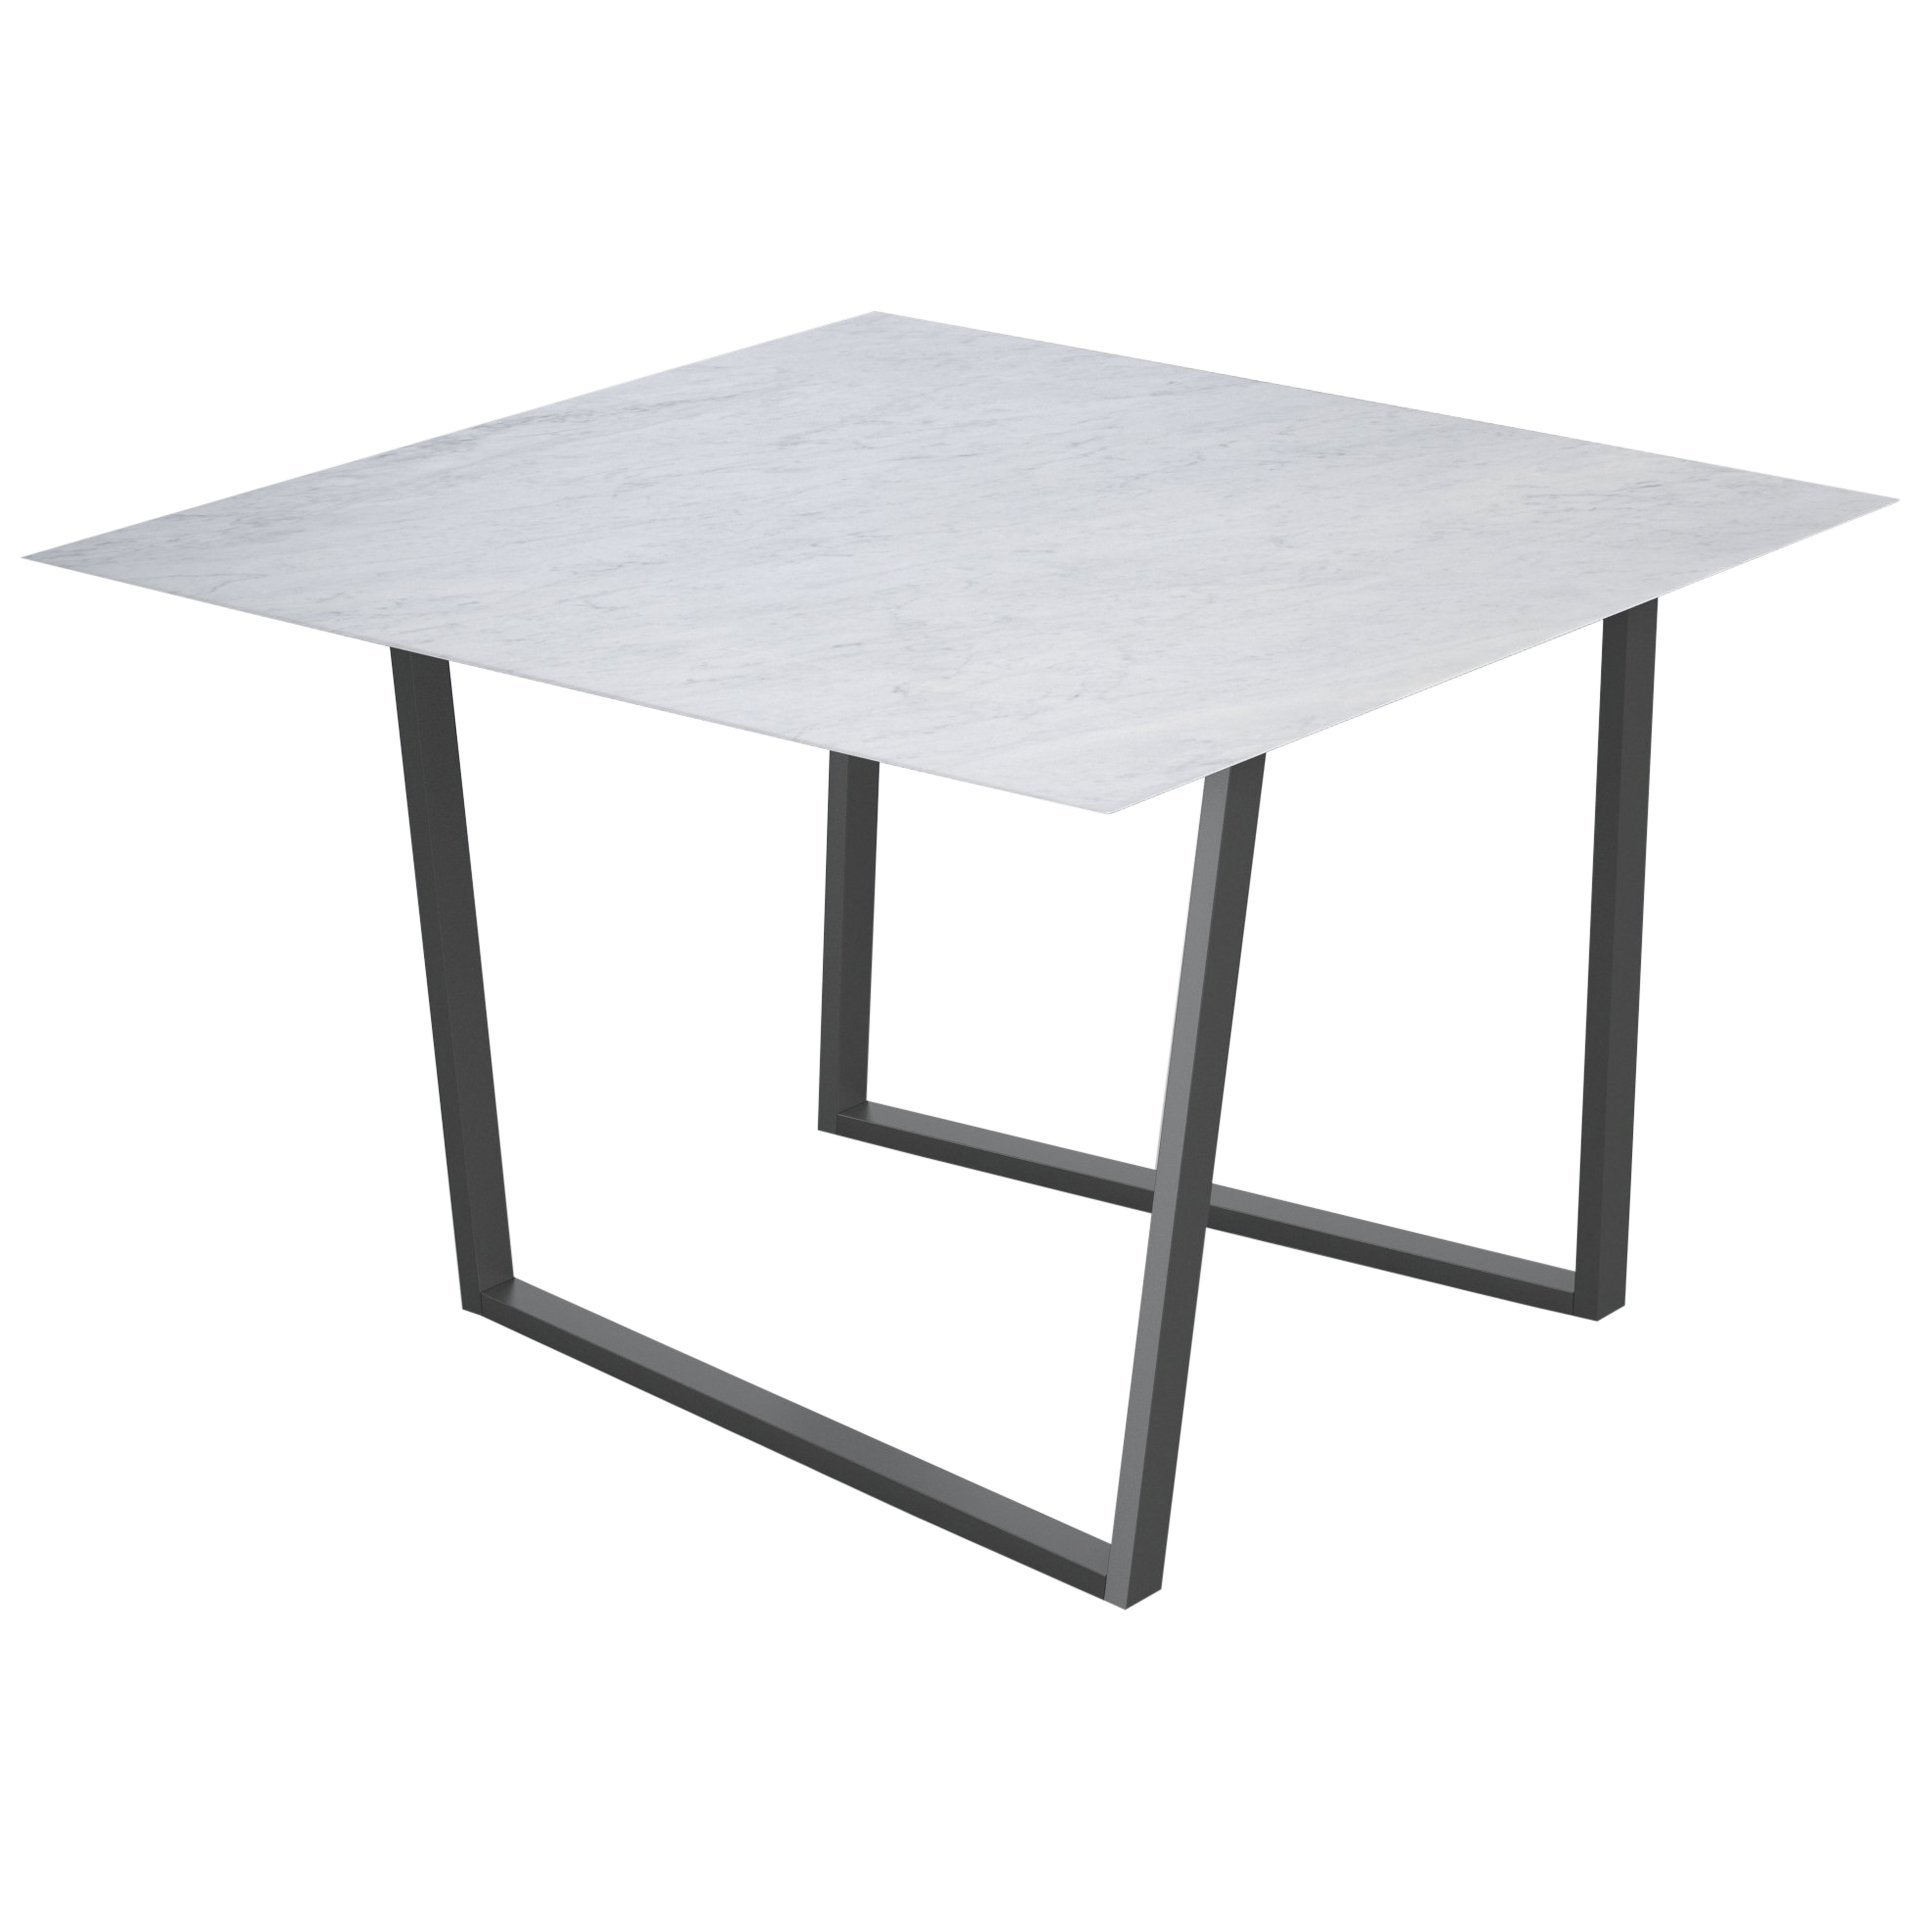 Salvatori Square Dritto Dining Table by Piero Lissoni